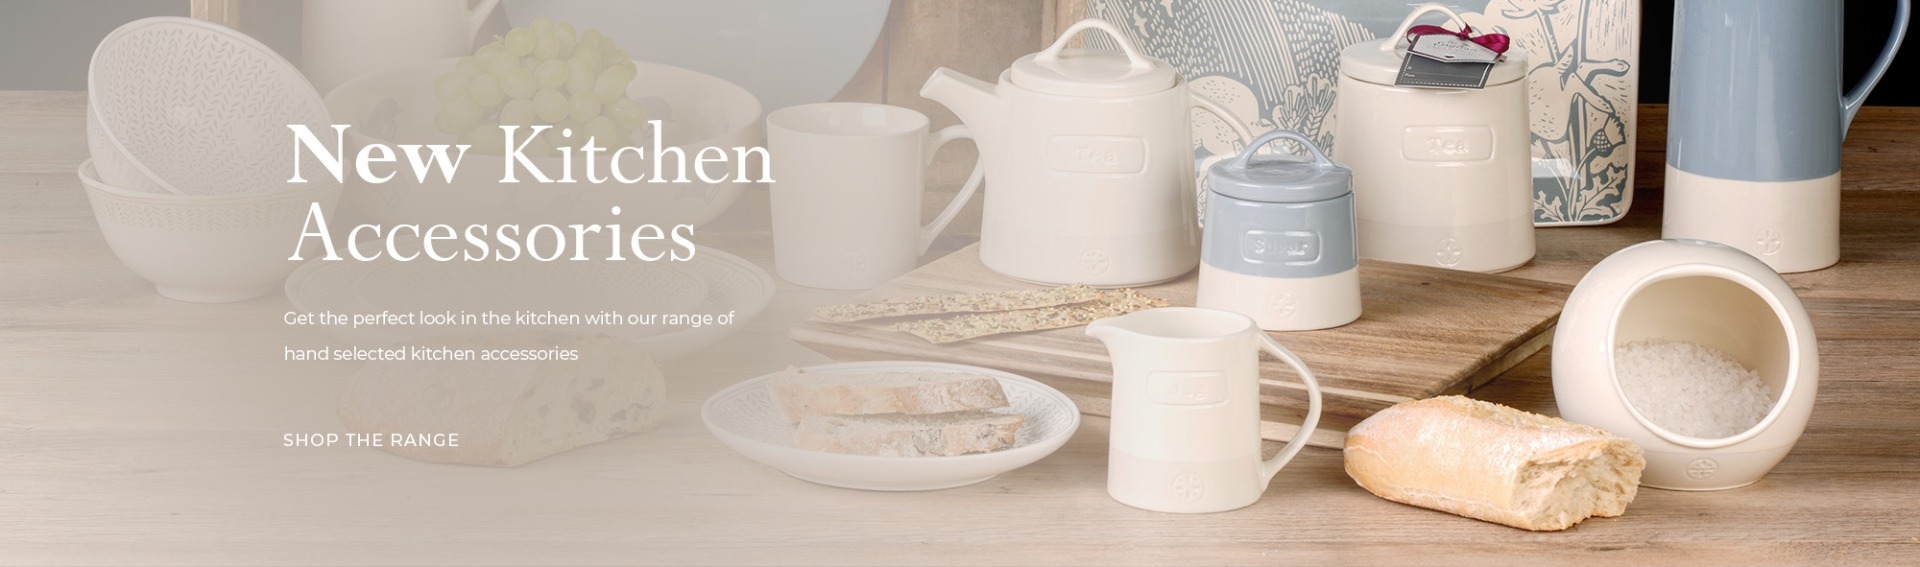 Bakers-and-Larners-Kitchen-Accessories